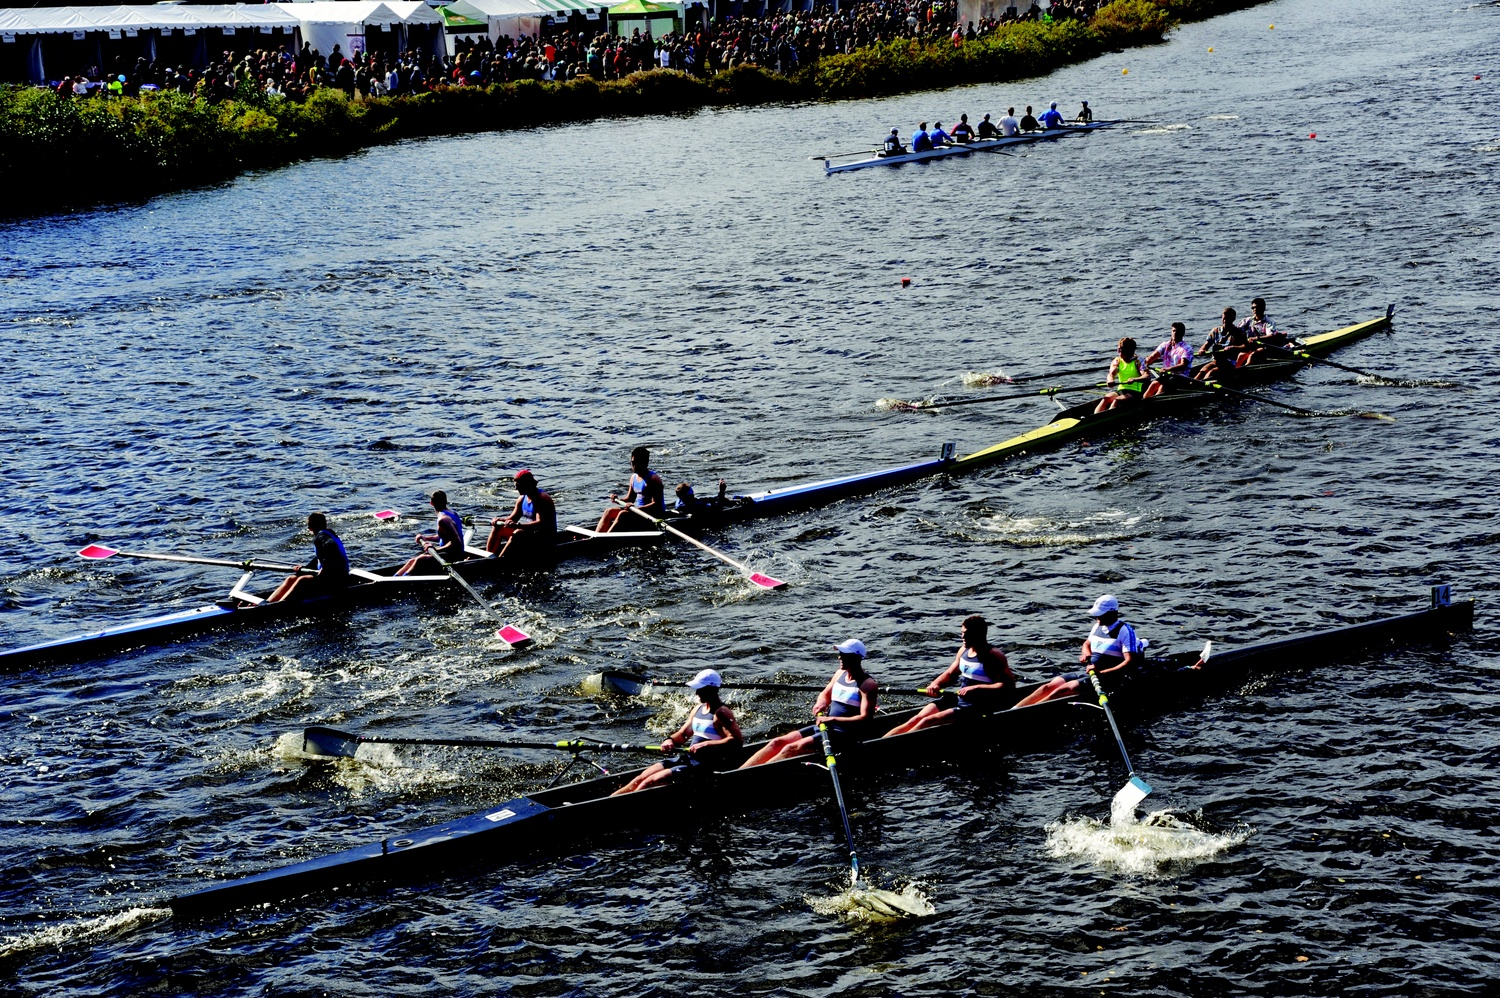 Hundreds of boats from across the country competed in club and collegiate races over the weekend on the Charles River.